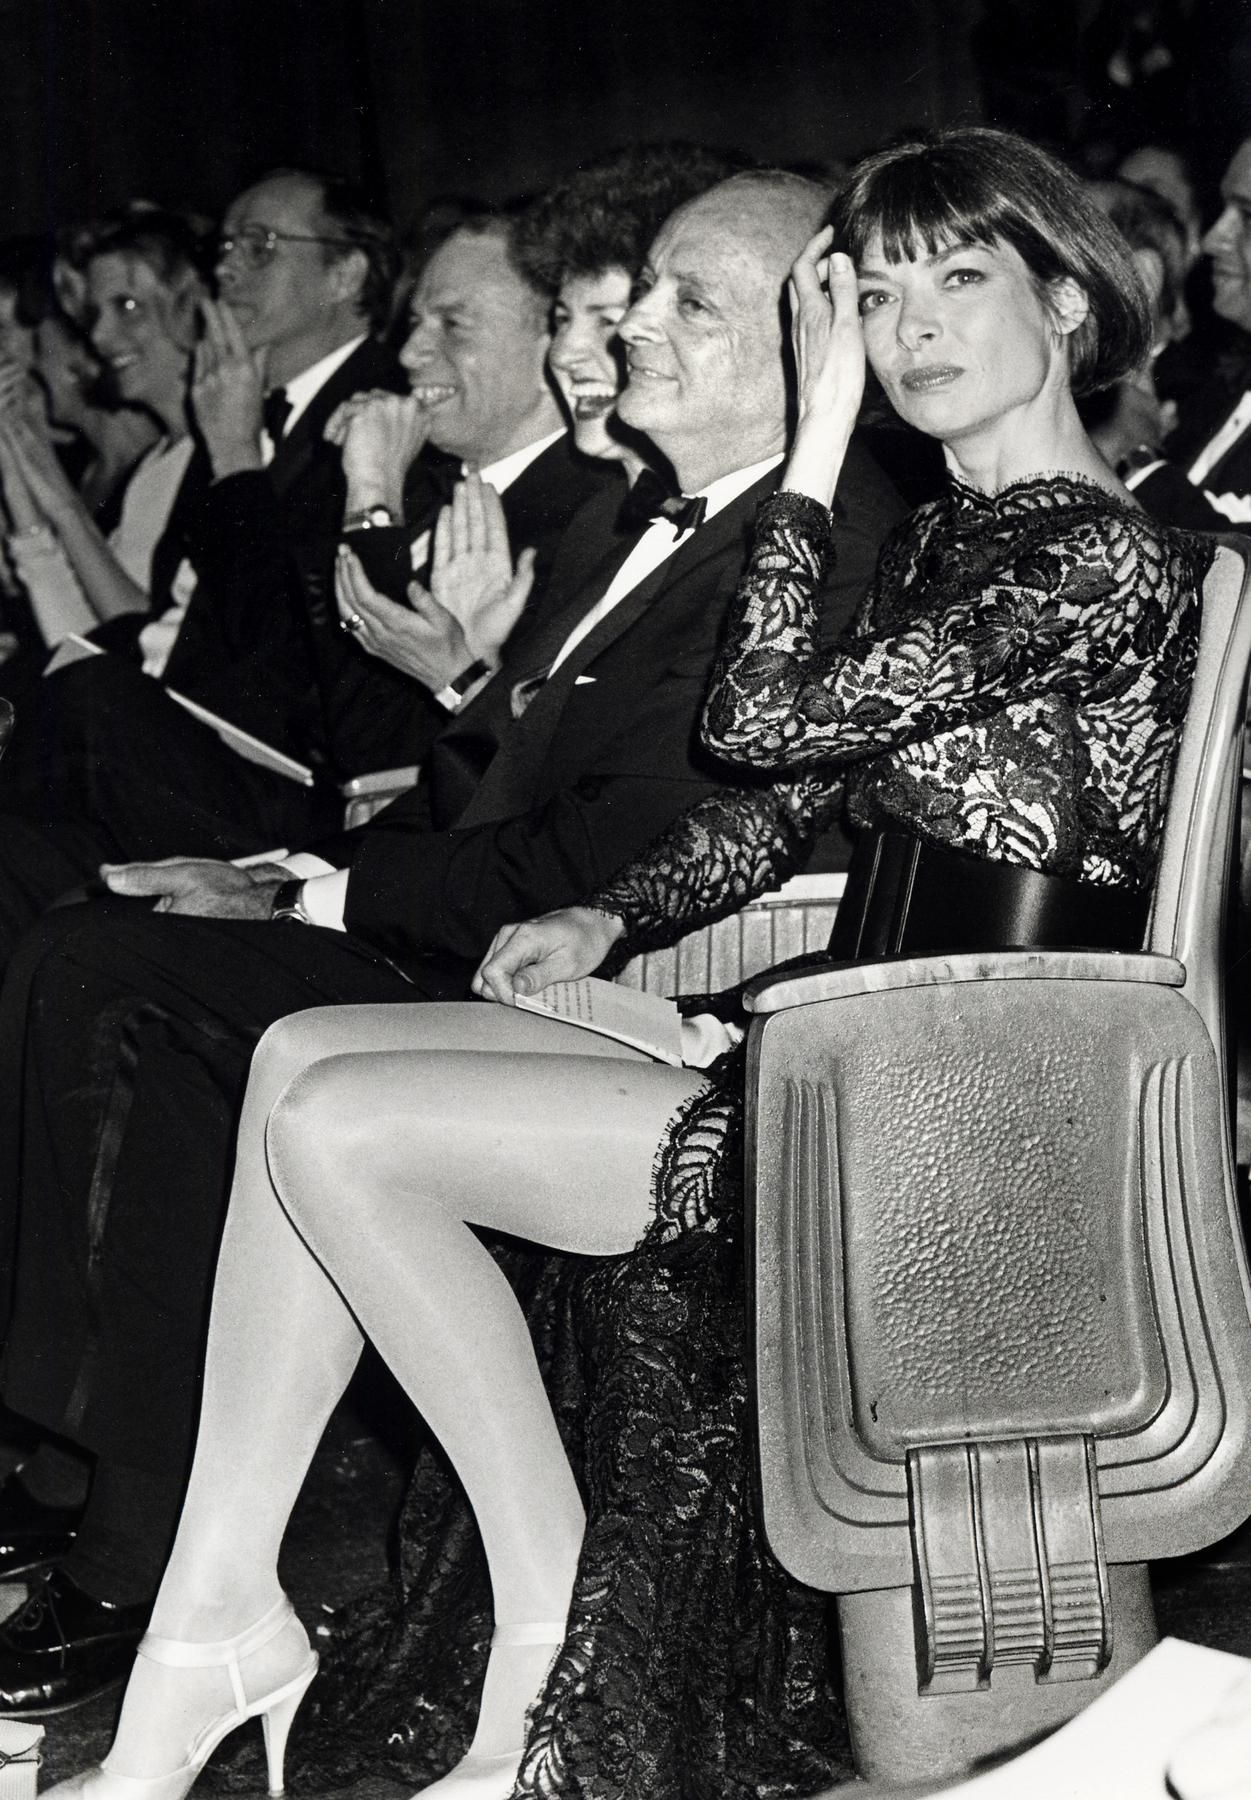 ANNA WINTOUR  February 25, 1991  With David Schaffer at the CFDA Awards in New York City. Photo: Ron Galella/WireImage